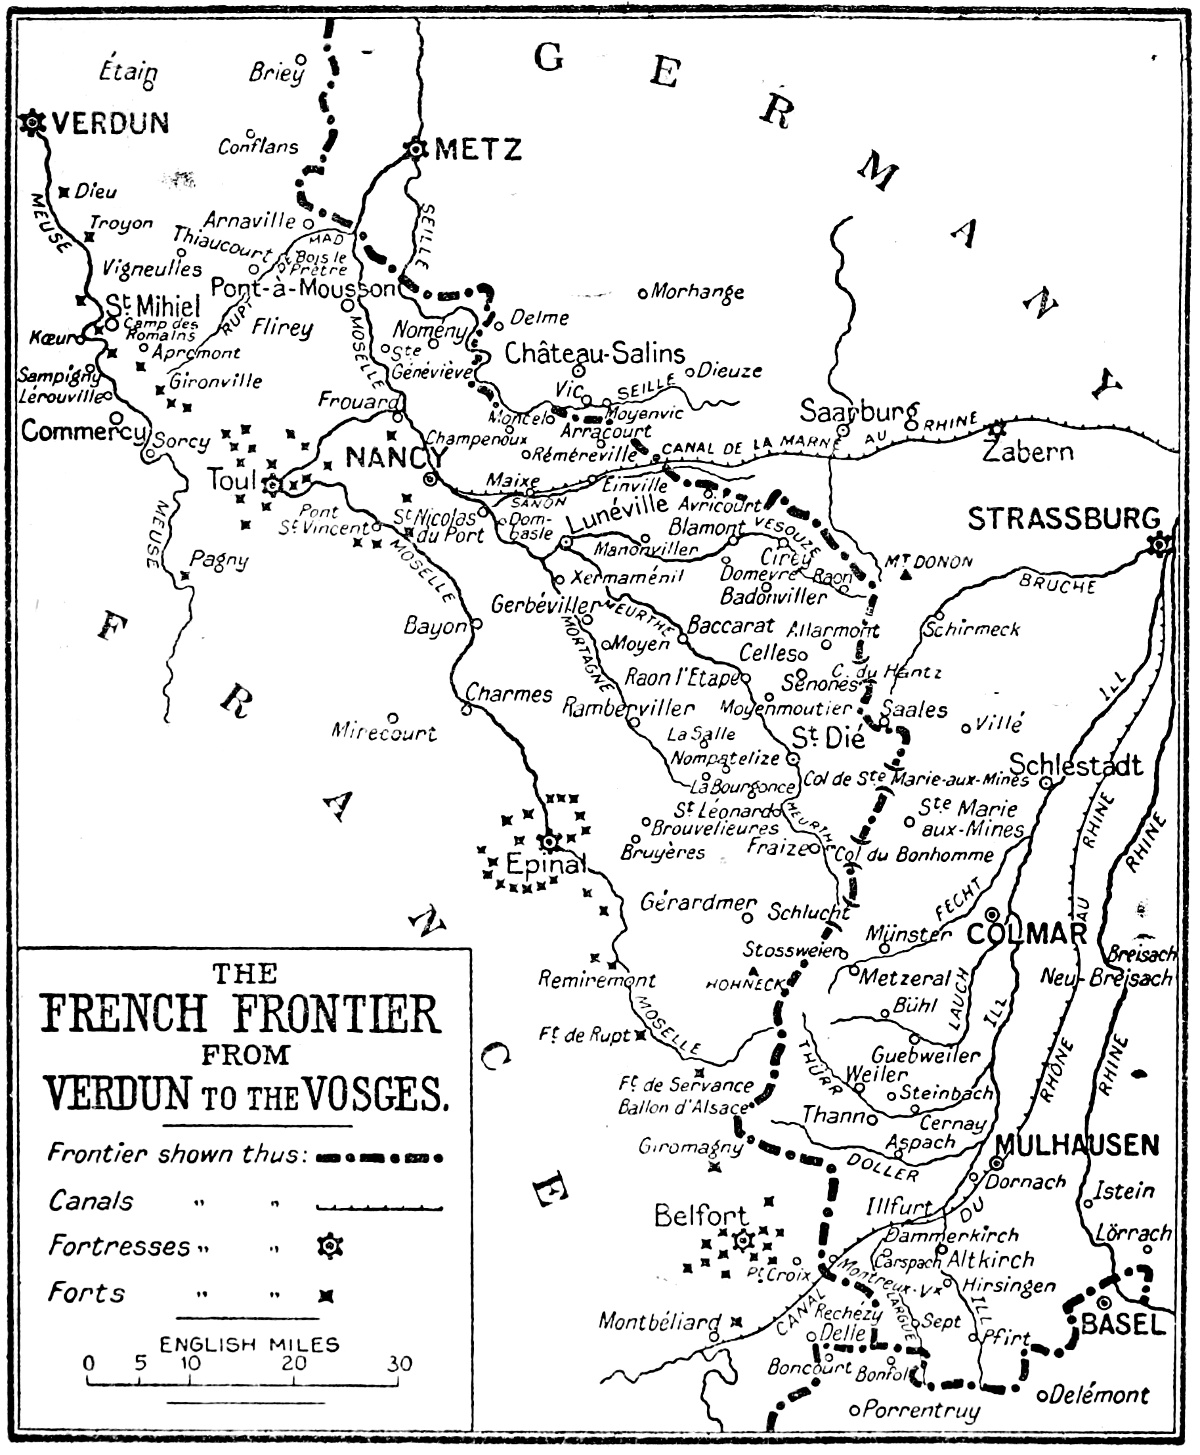 verdun to the vosges by gerald fitzgerald c bell Fast and Furious Brian's House the french frontier from verdun to the vosges